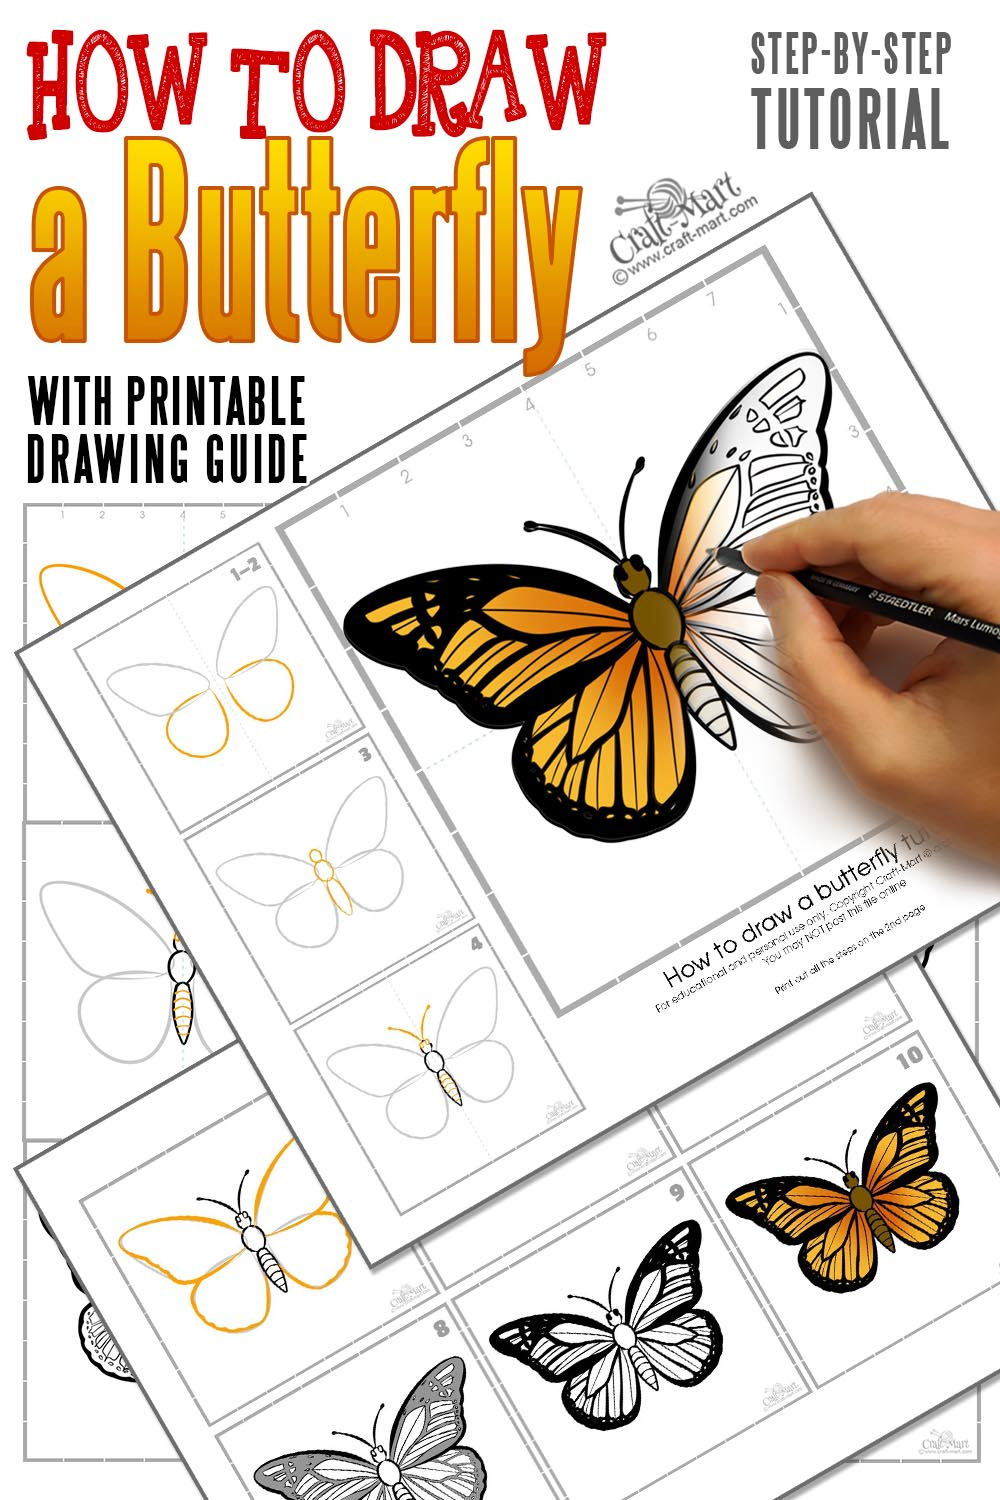 how to draw a butterfly step by step printable guide